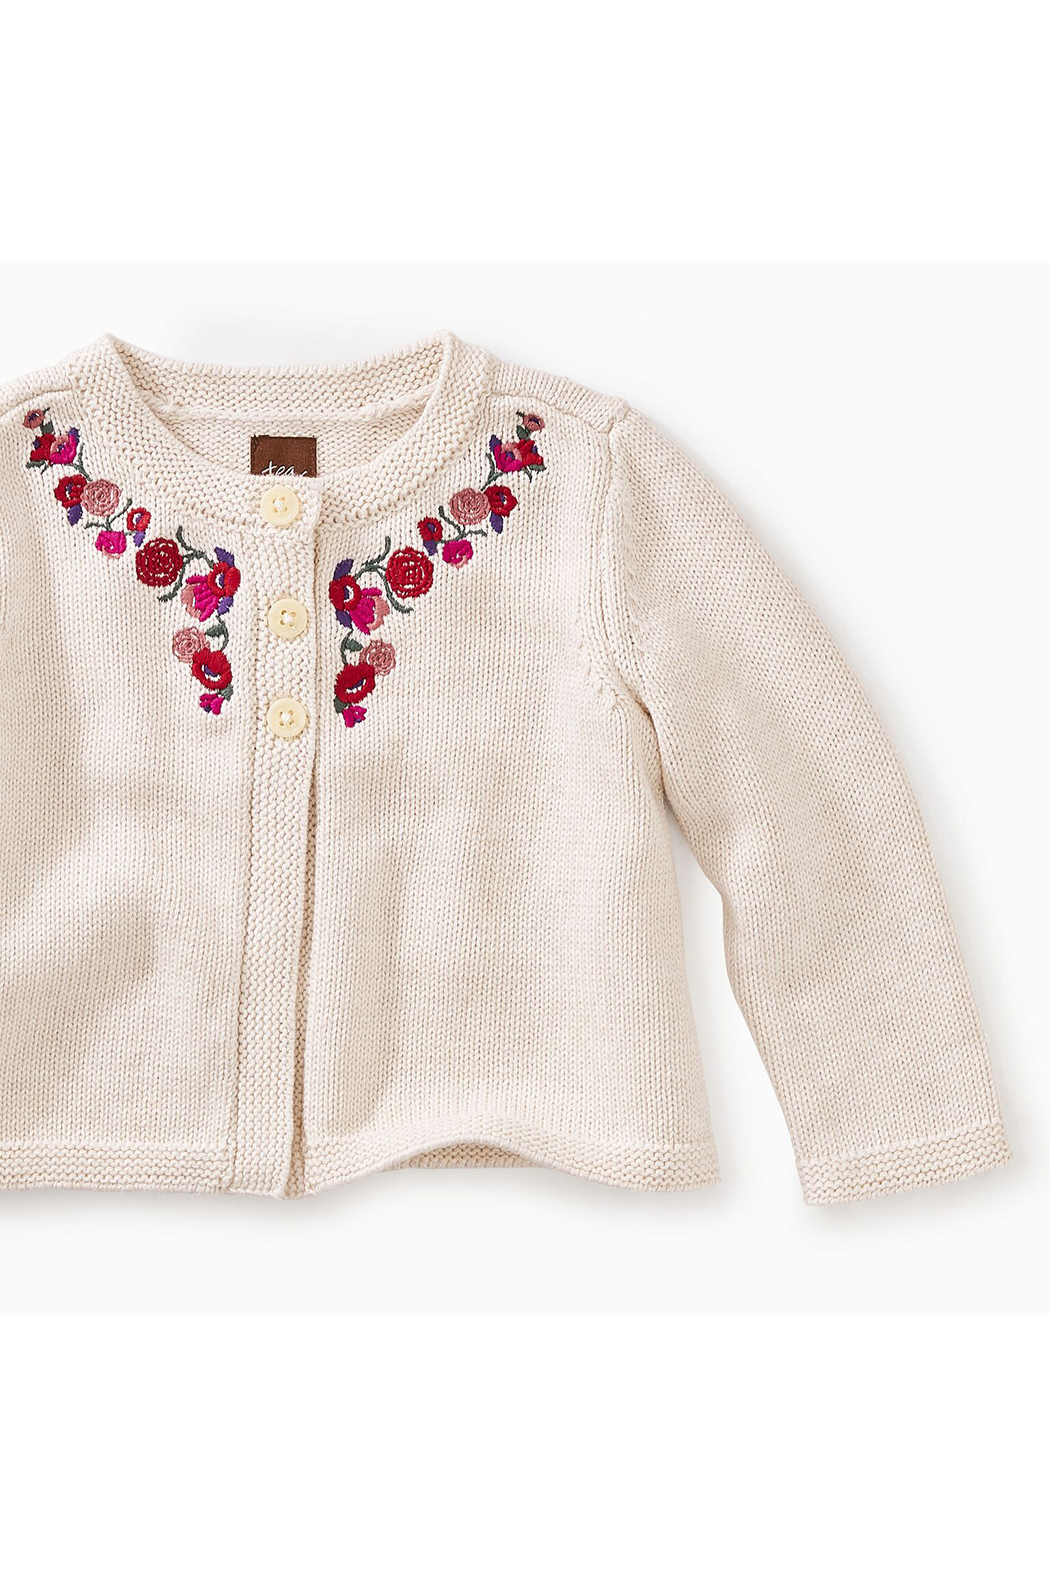 Tea Collection Embroidered Baby Cardi - Front Full Image